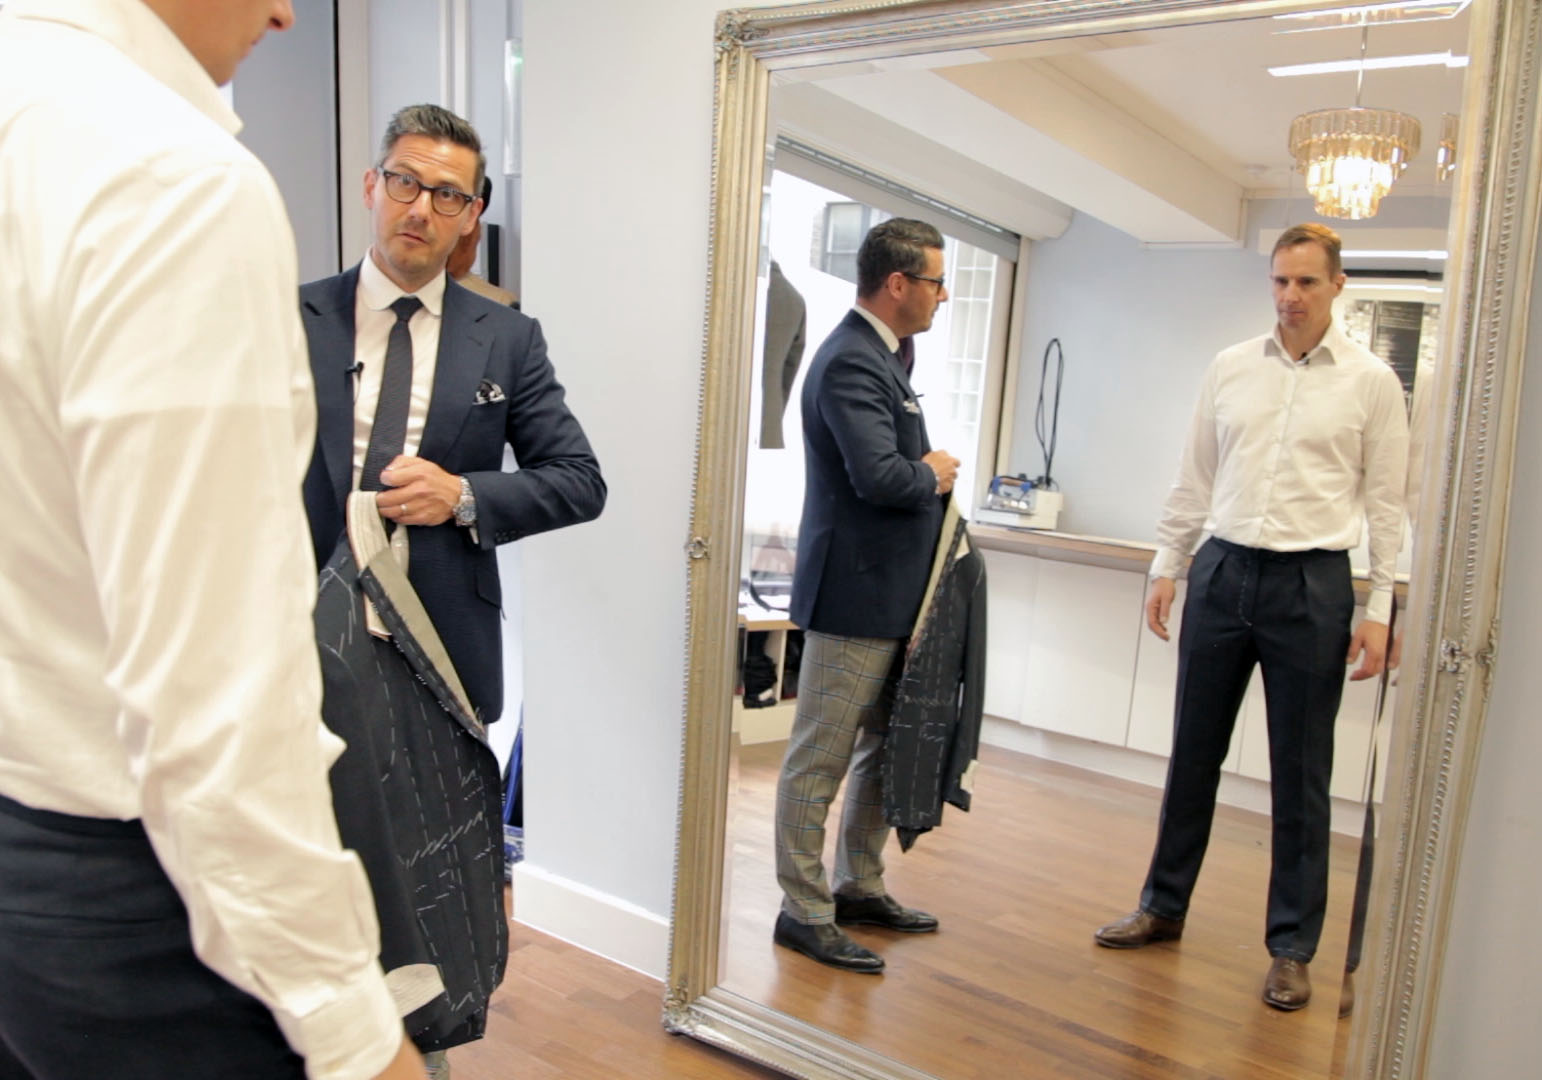 Bespoke trousers are a very personal choice – here's why